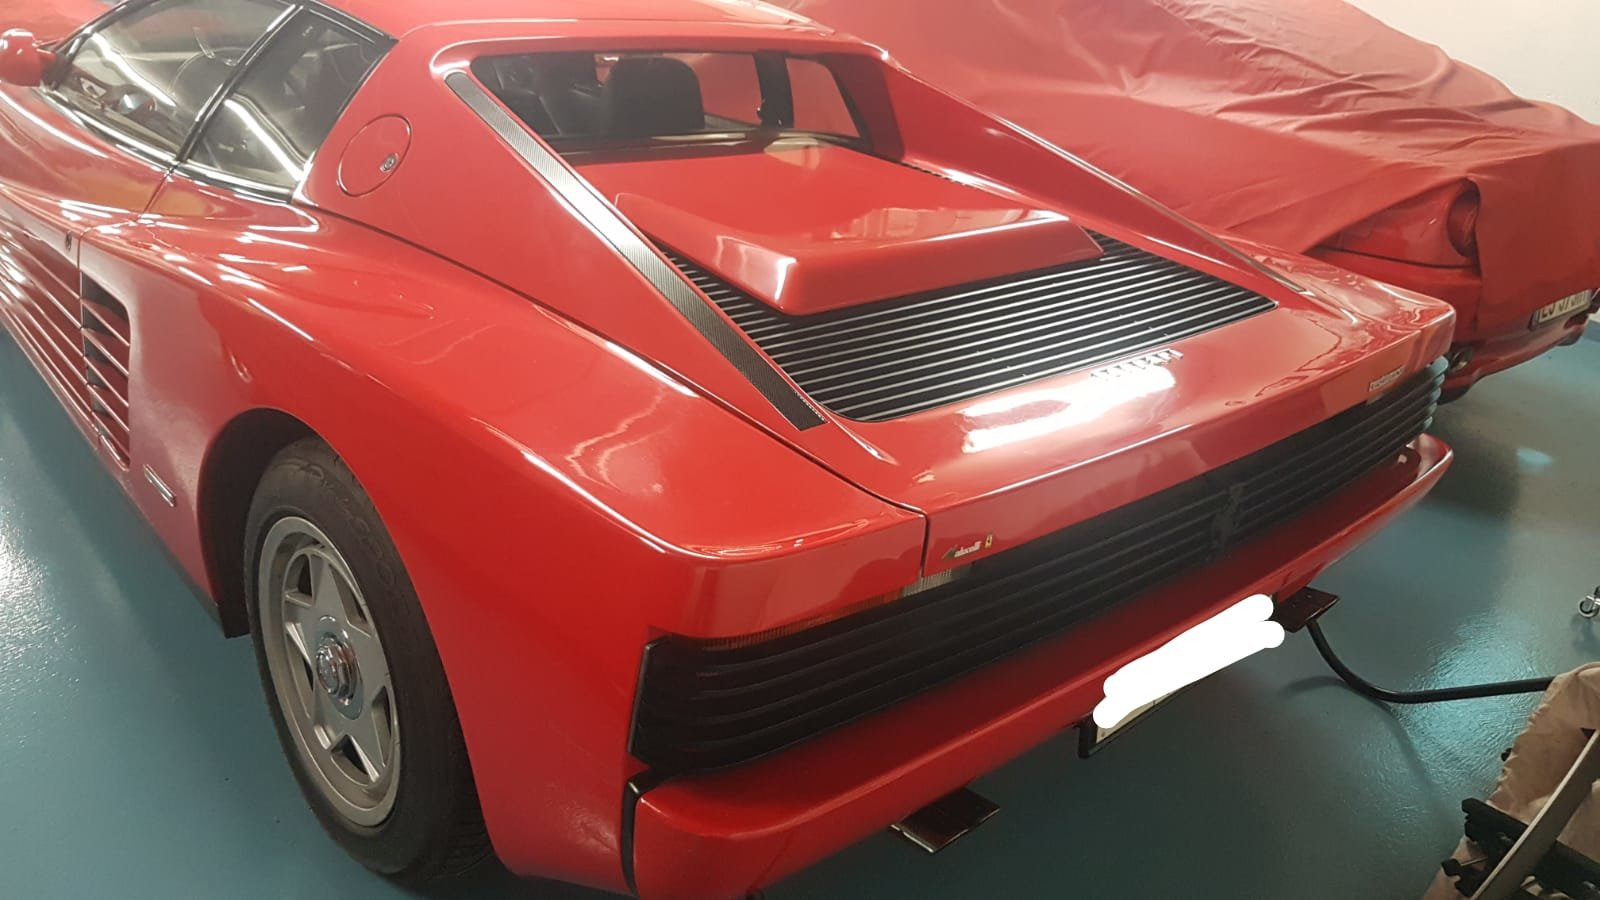 1988 Striking Testarossa in excellent conditions SOLD (picture 2 of 6)